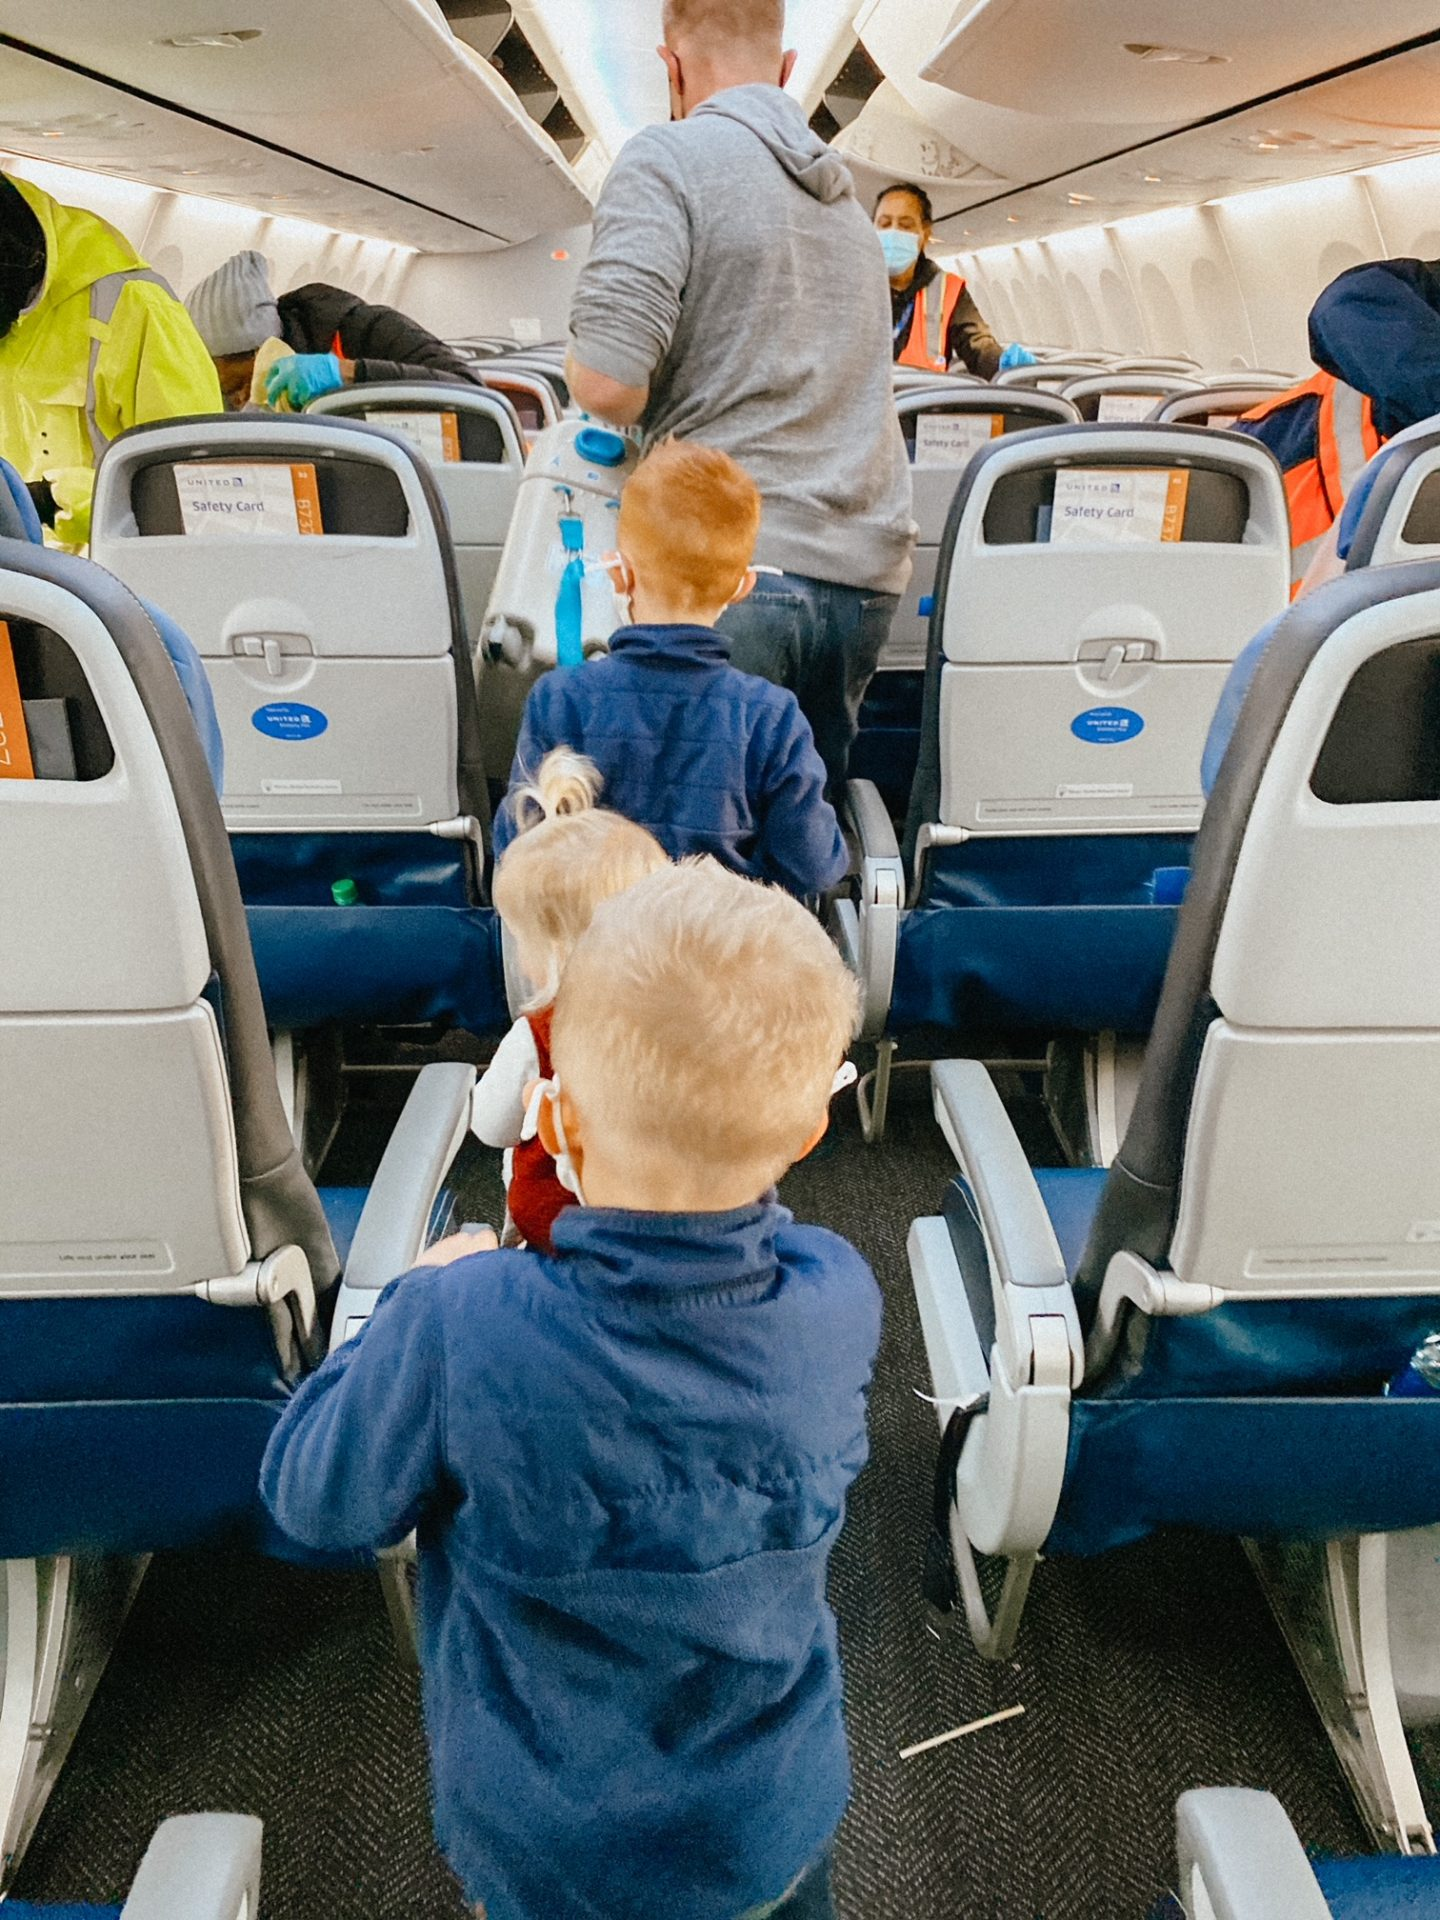 flying with kids during a pandemic